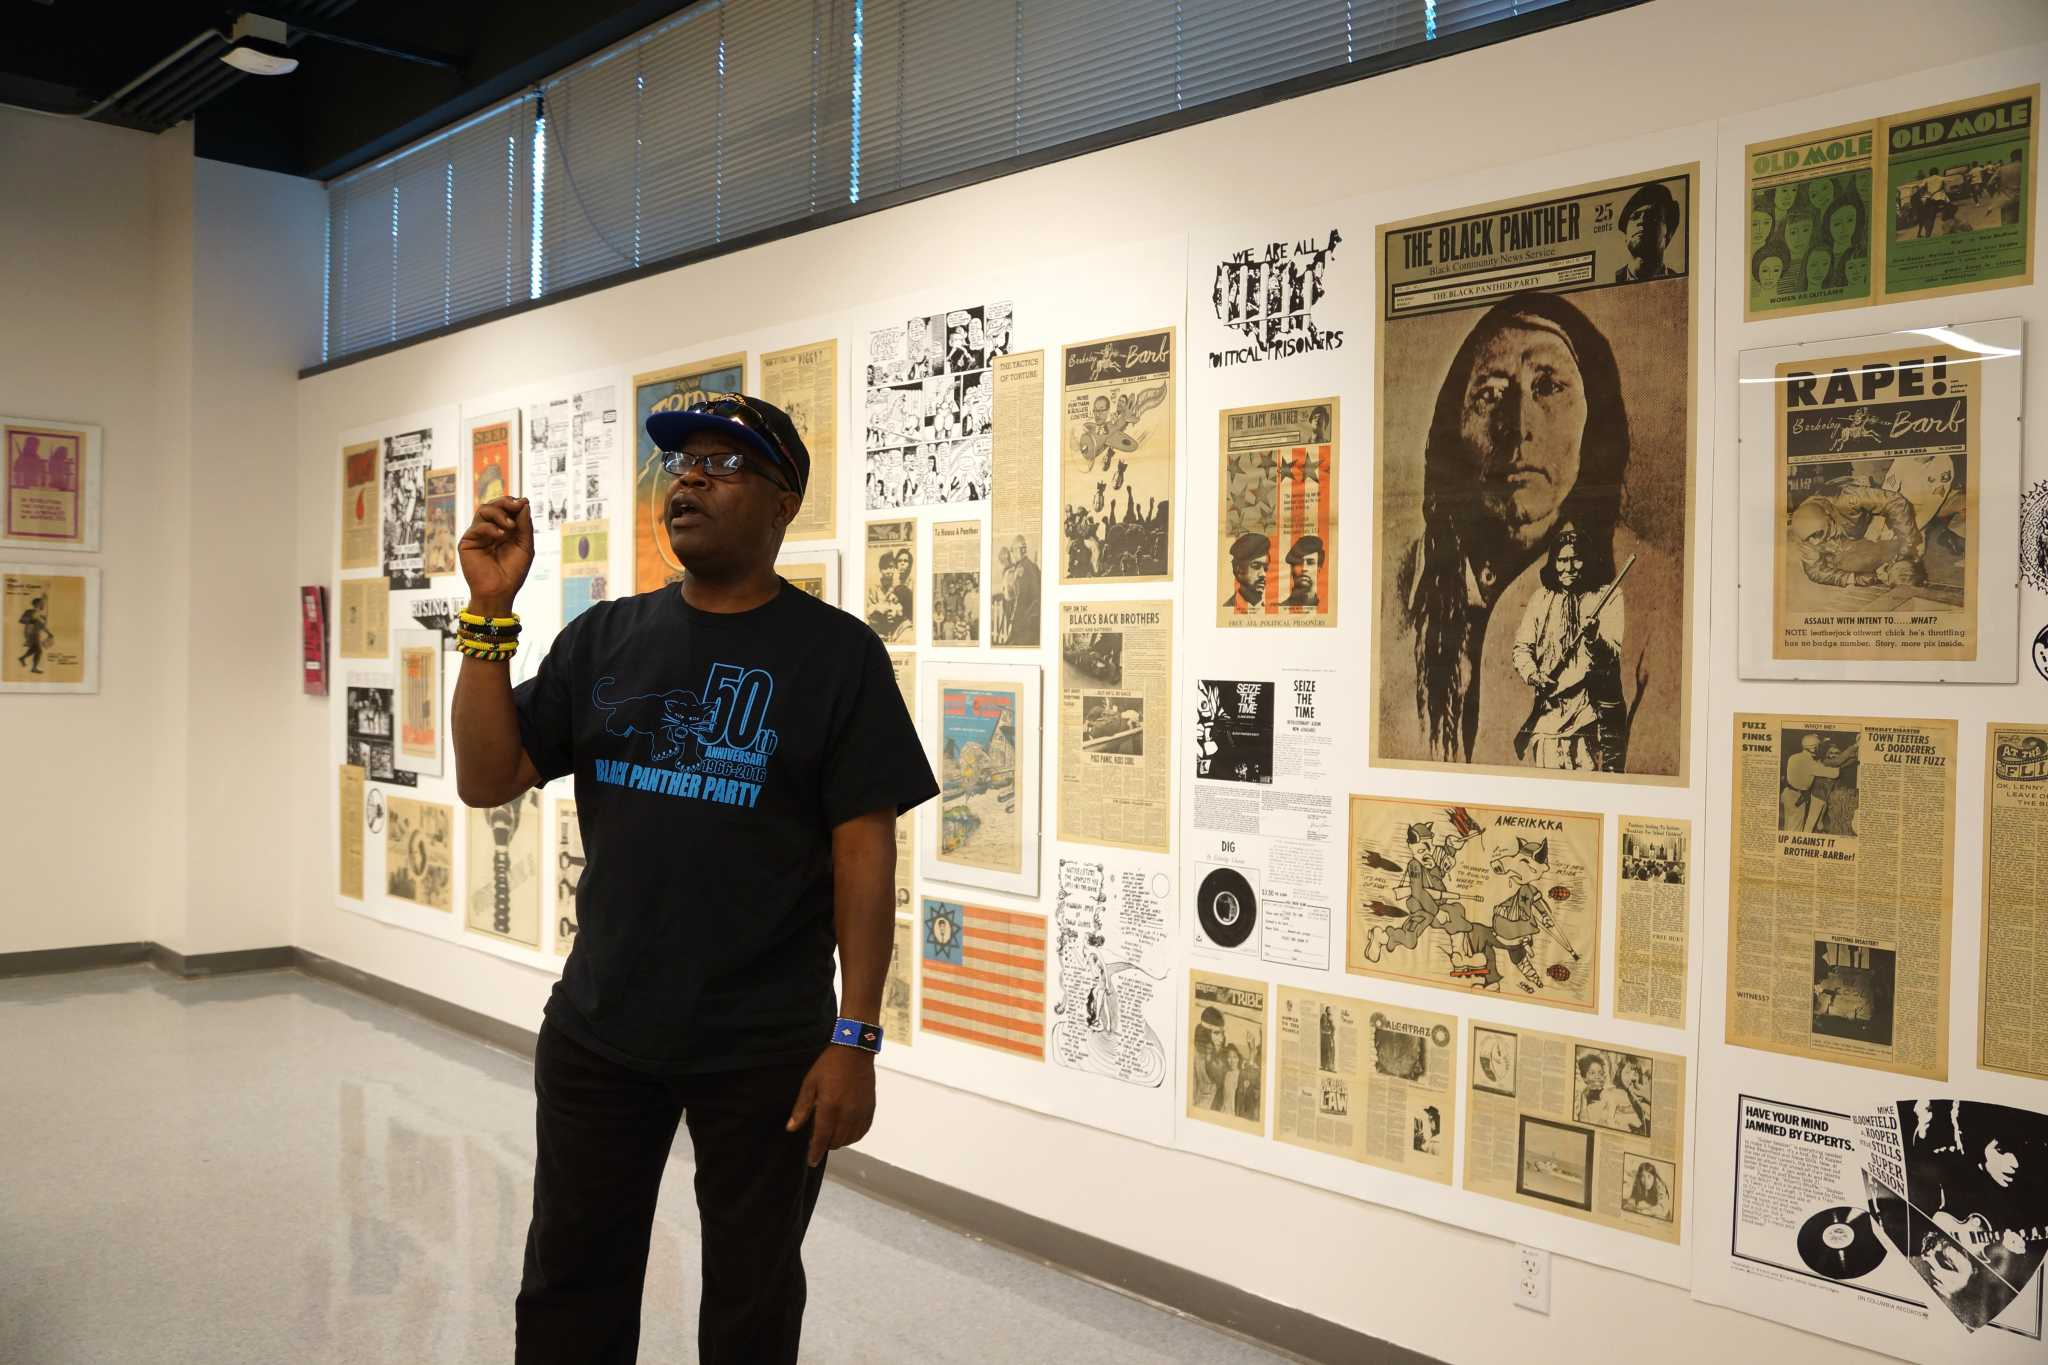 Billy X Jennings from the archive of Black Panther Party speaks to students and faculty at the Revolution Times: Underground Press of the '60s and '70s at the Design Gallery on Thursday, Nov. 3, 2016. The exhibition showcased the graphic design of the 1960s and 1970s radical newspapers. (Perng-chih Huang/Xpress)